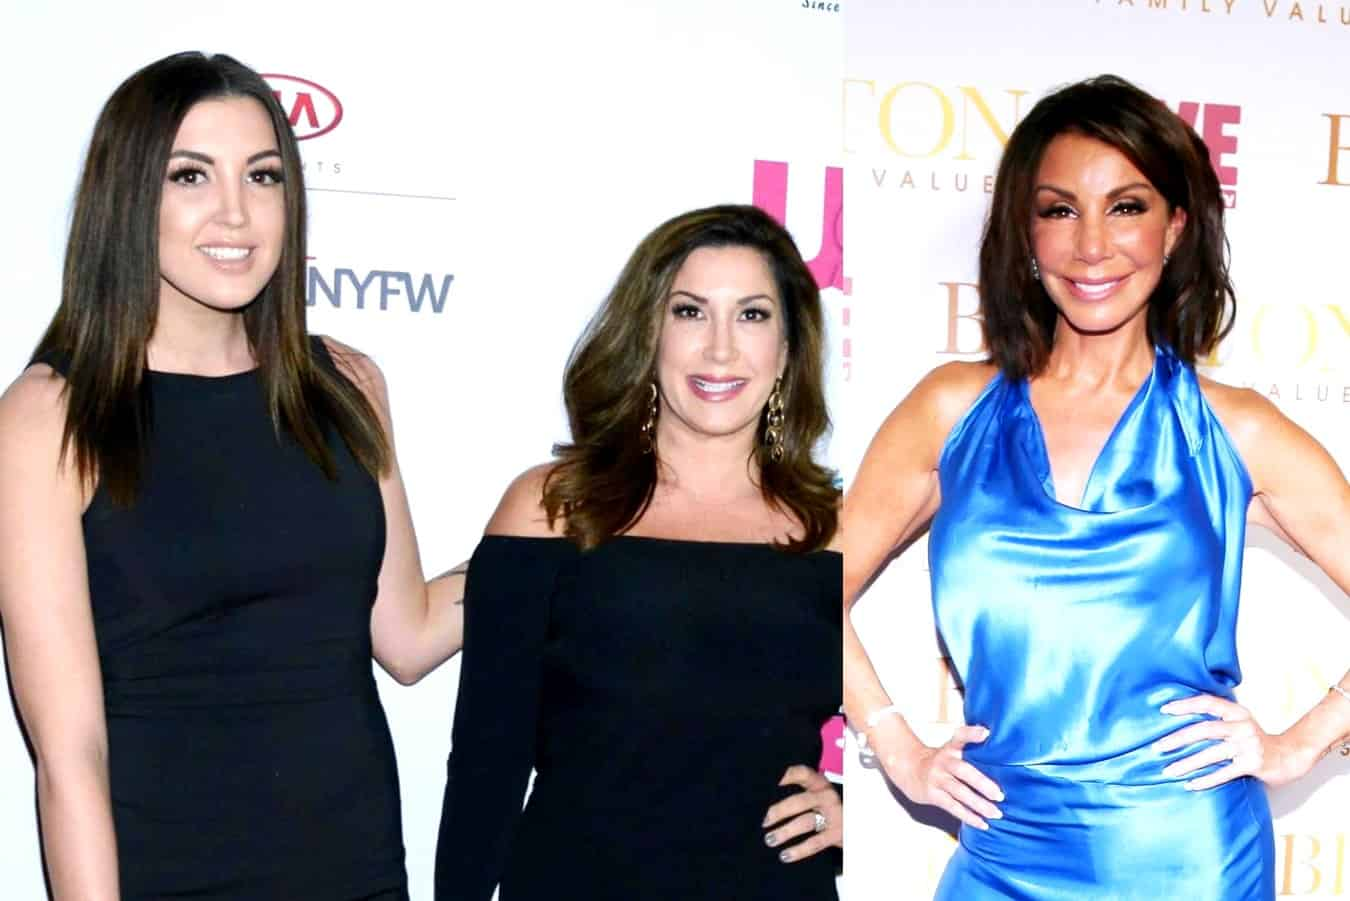 RHONJ's Ashlee Holmes Reveals New Details About Danielle Staub Hair Pulling Incident and Slams Her as 'Beverly,' Find Out if Jacqueline Laurita's Daughter Has Any Regrets About Altercation